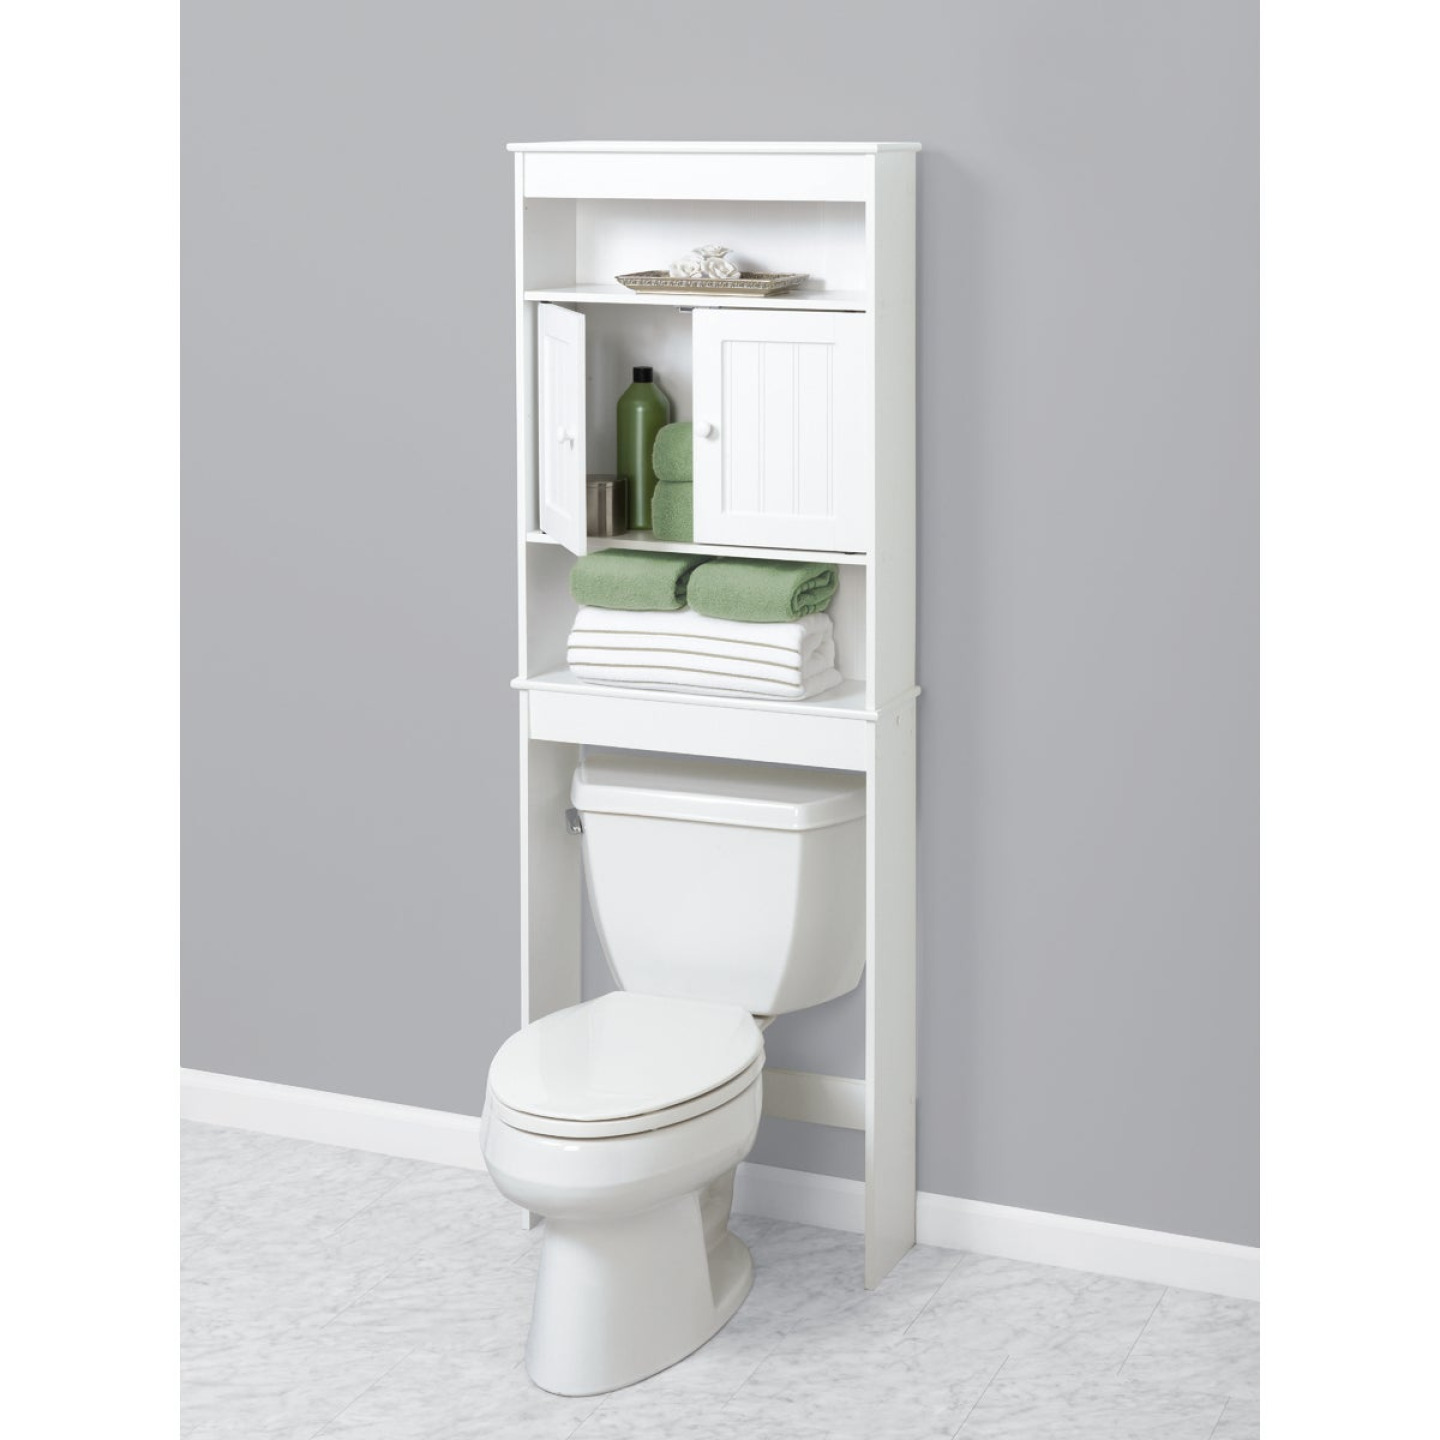 Zenith Country Cottage White Over-the-Toilet Cabinet, 2 Door/3 Shelf Image 3